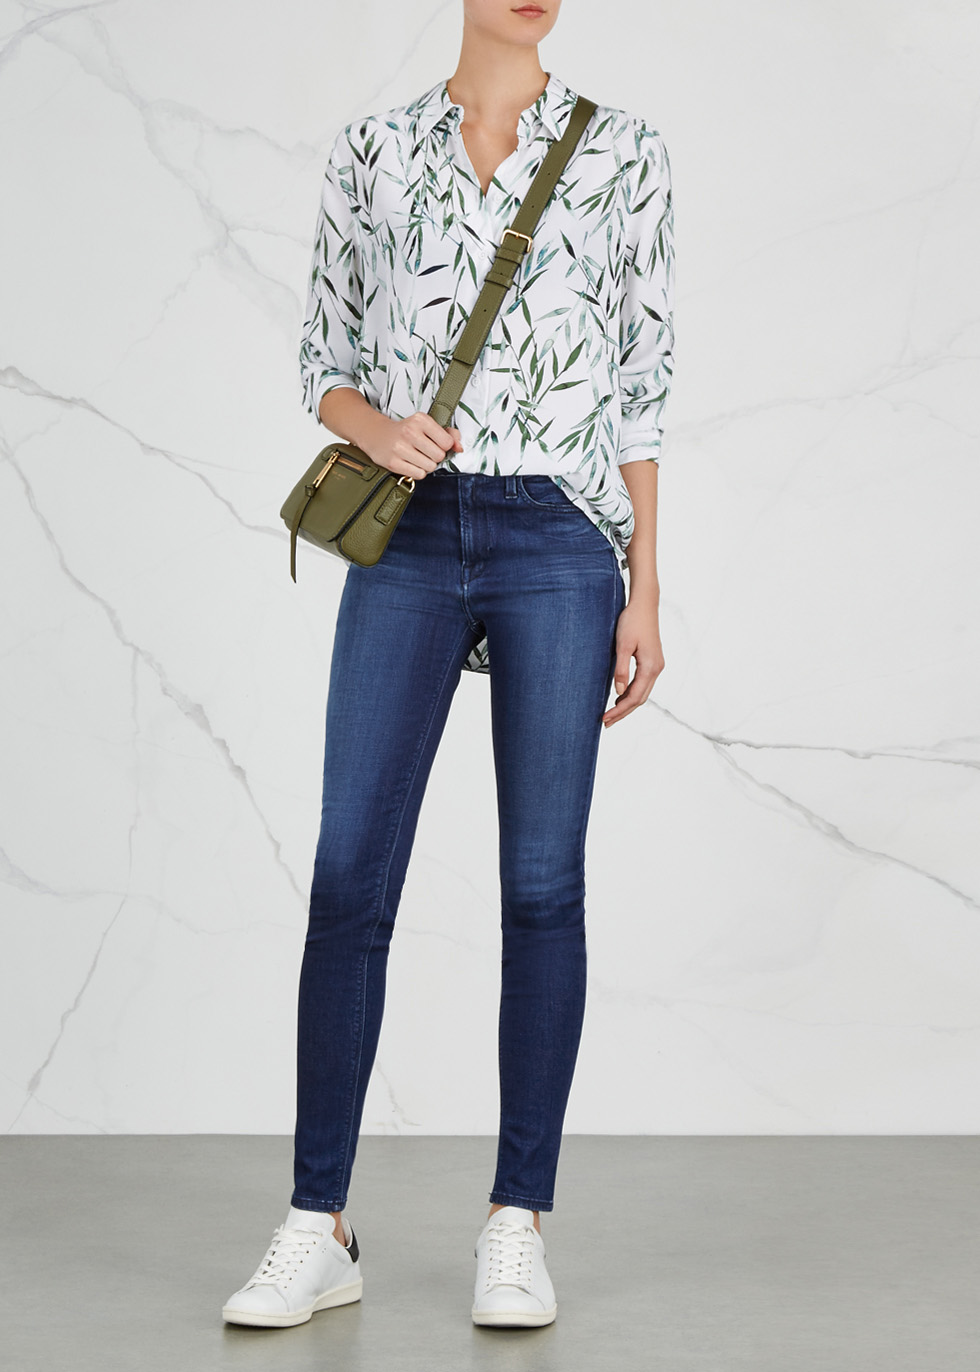 Indigo Touch skinny jeans - Replay